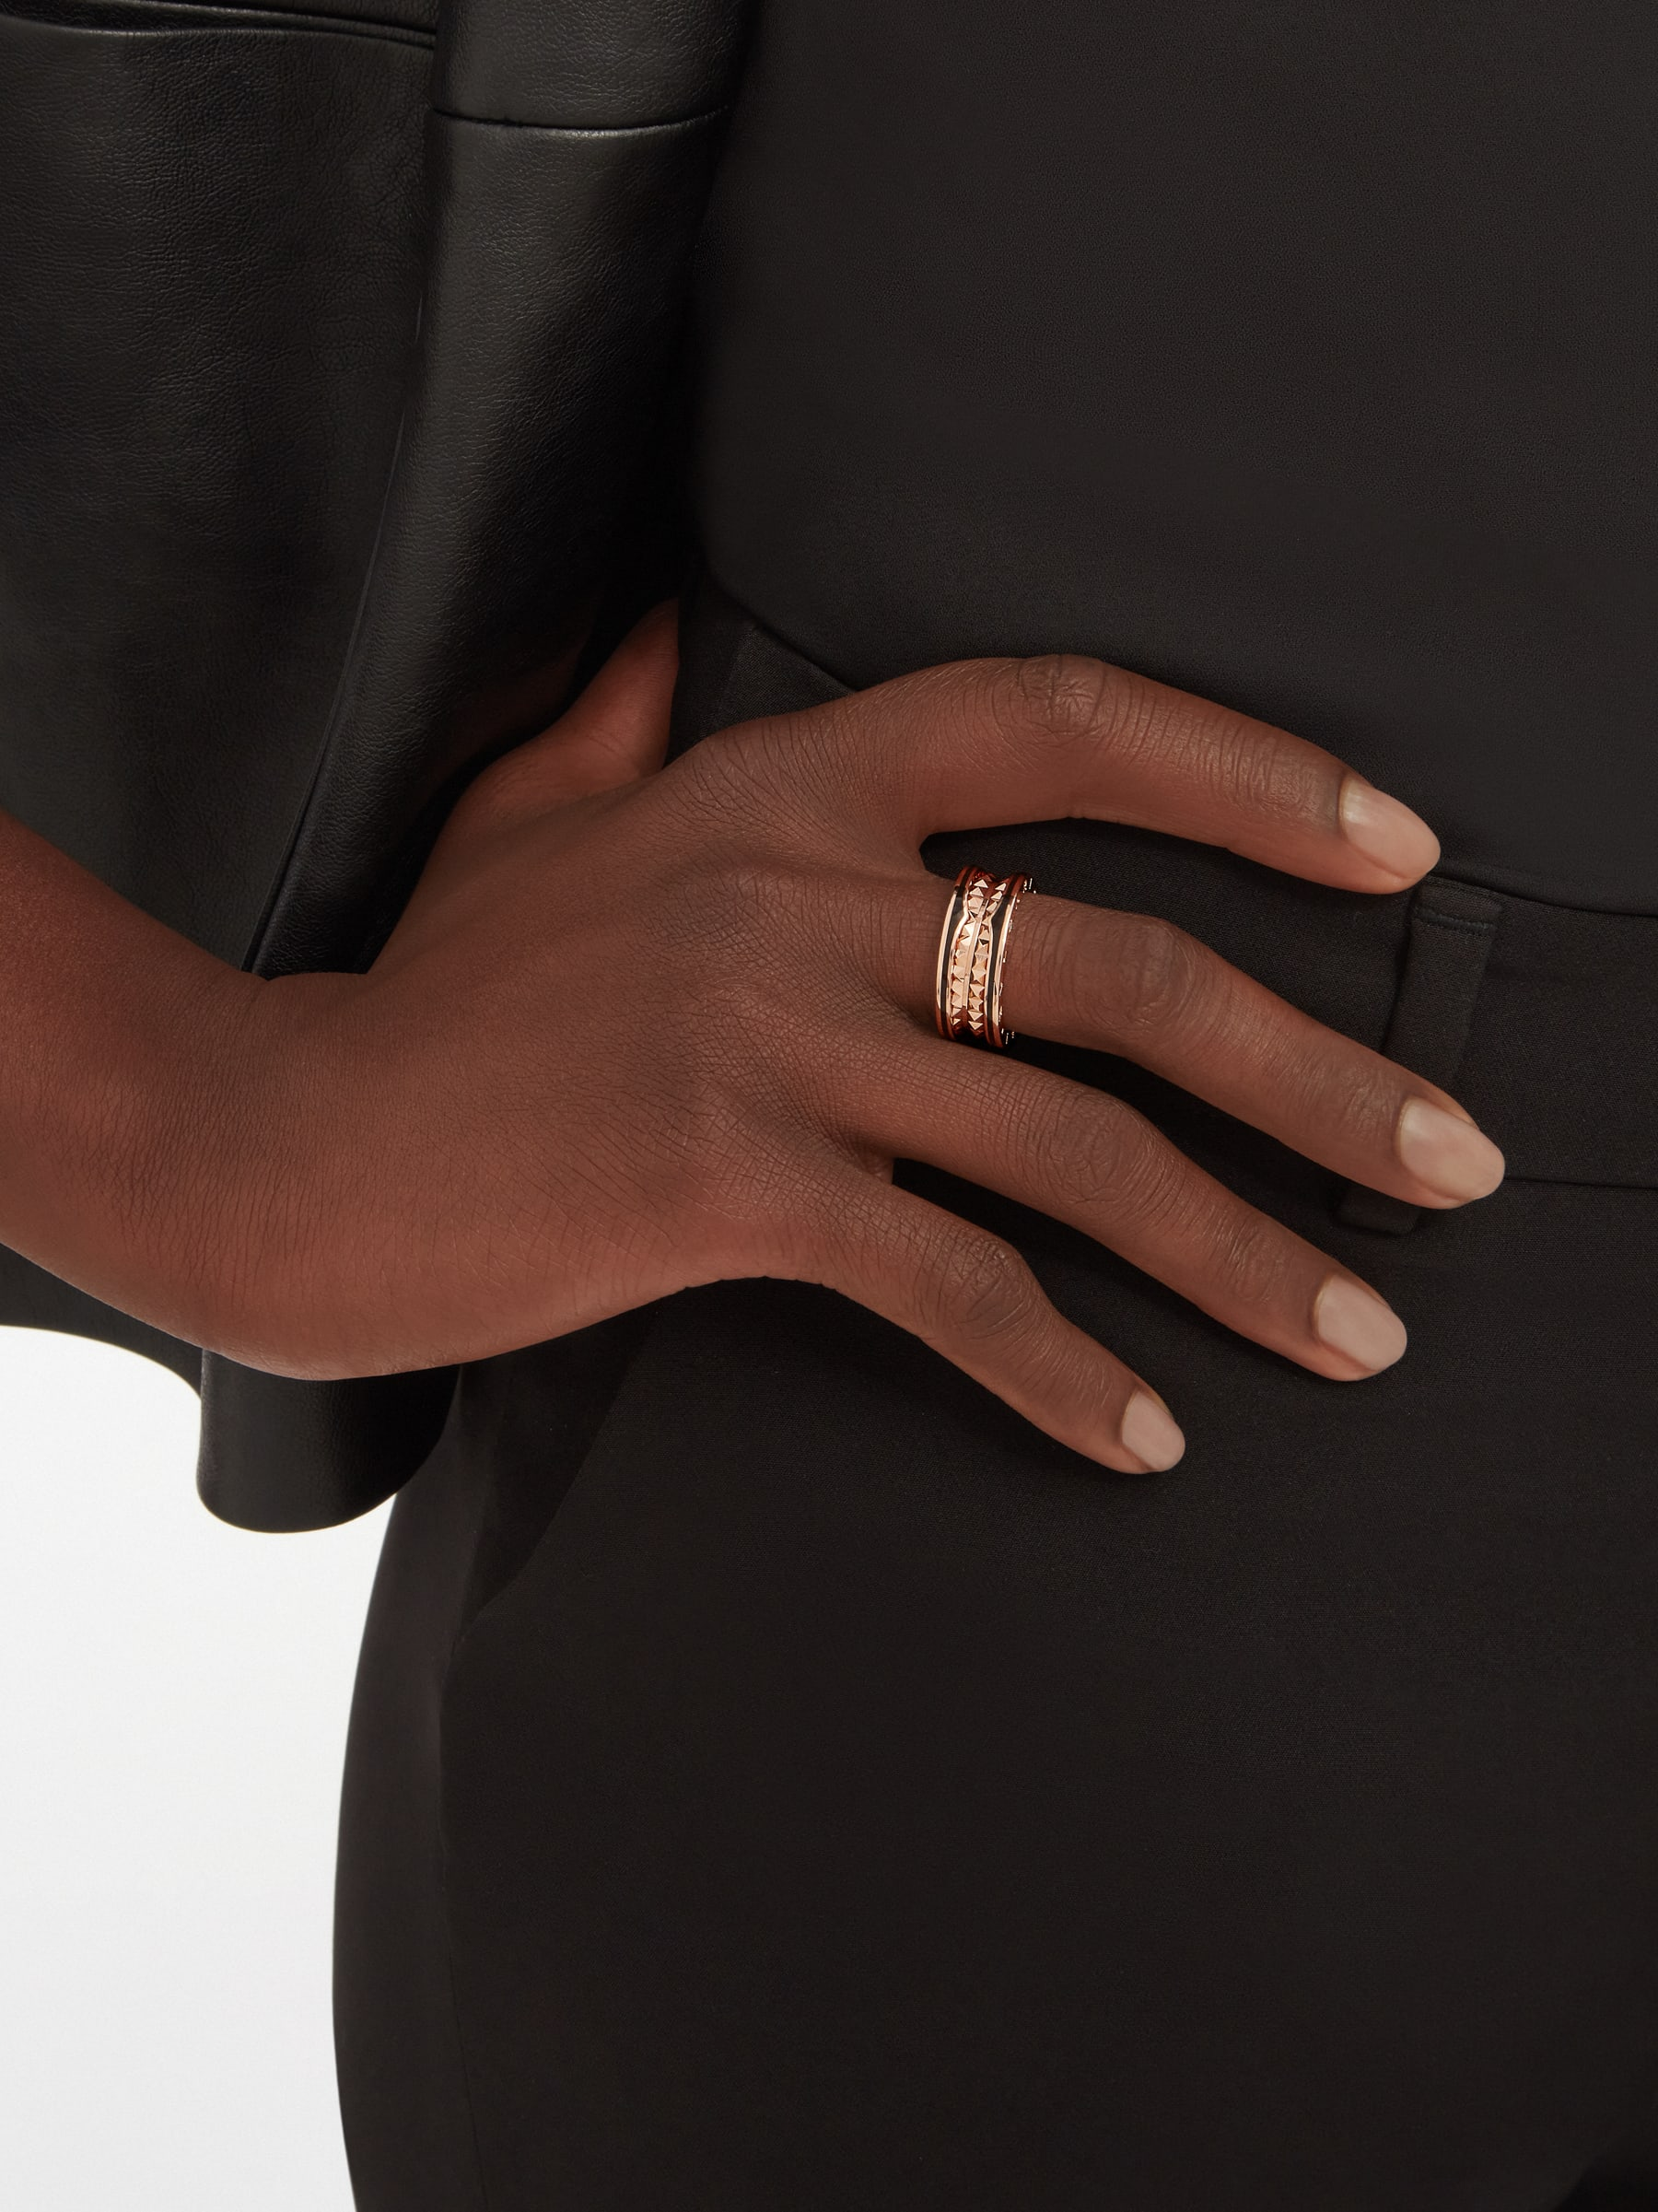 B.zero1 Rock two-band ring in 18 kt rose gold with studded spiral and black ceramic inserts on the edges AN859090 image 1